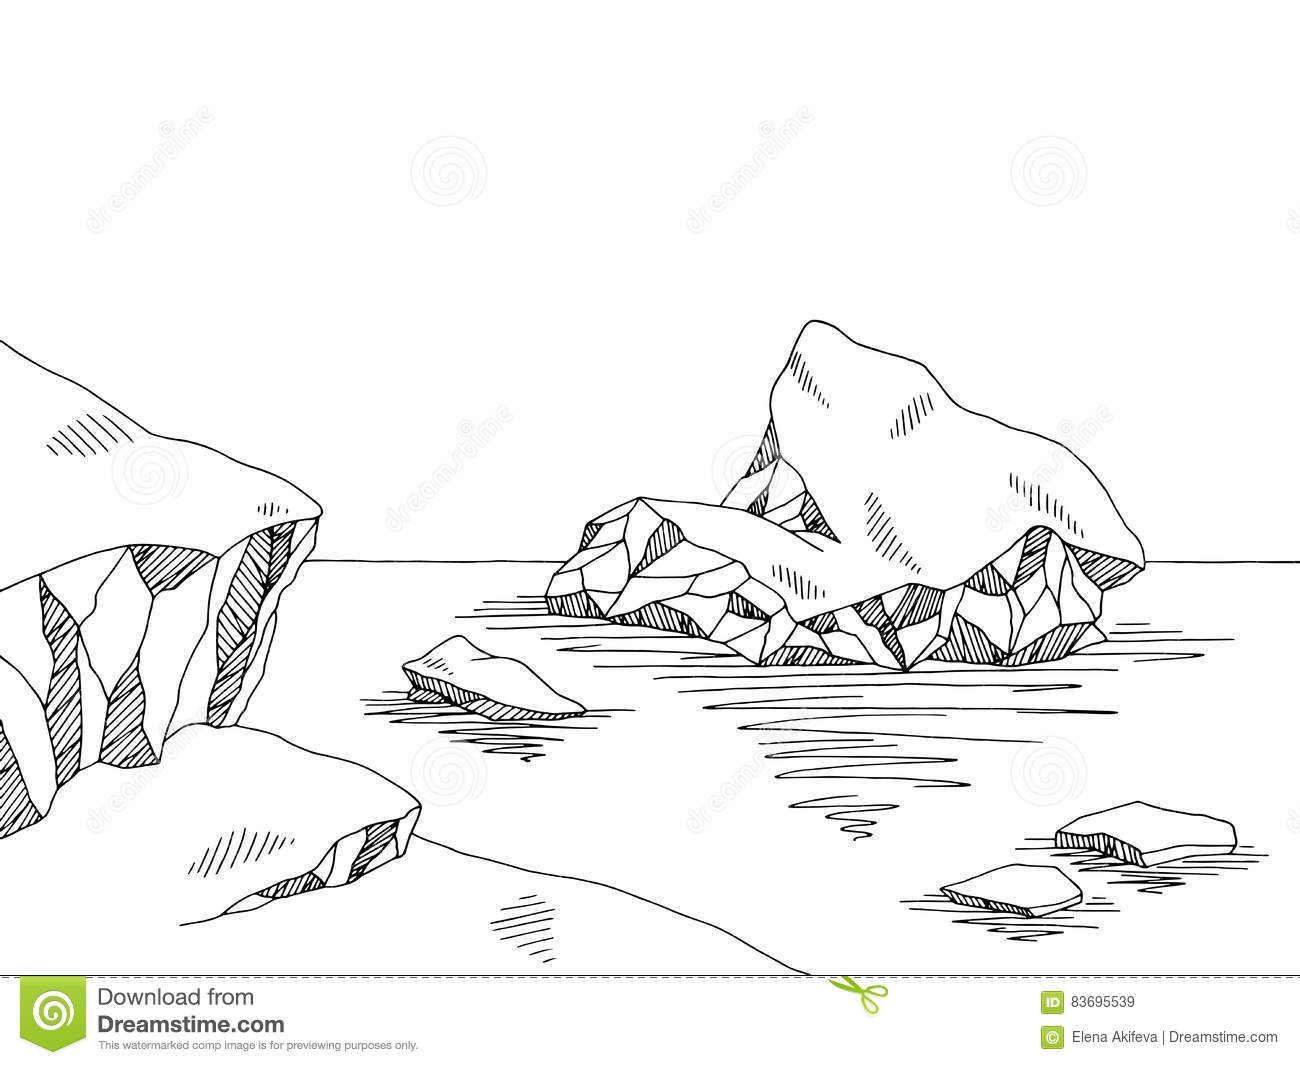 Iceberg Graphic Black White Sketch Illustration Cartoon